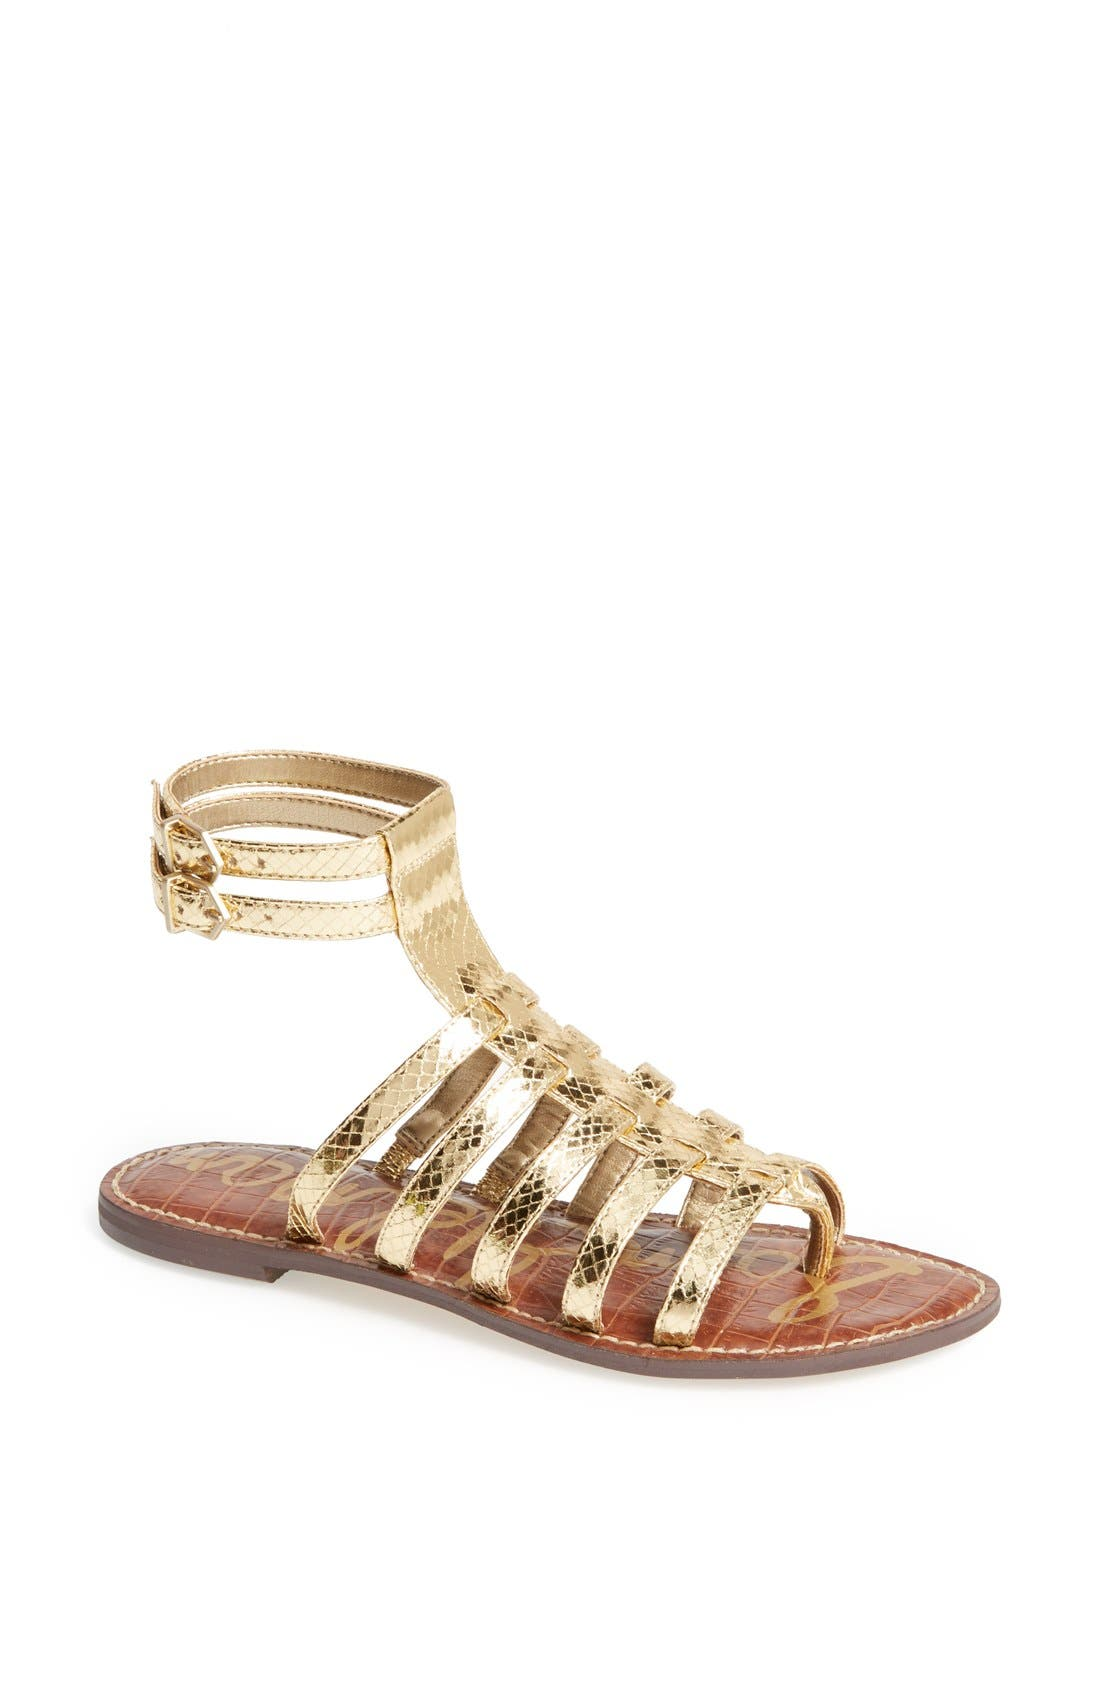 Alternate Image 1 Selected - Sam Edelman 'Gilda' Gladiator Sandal